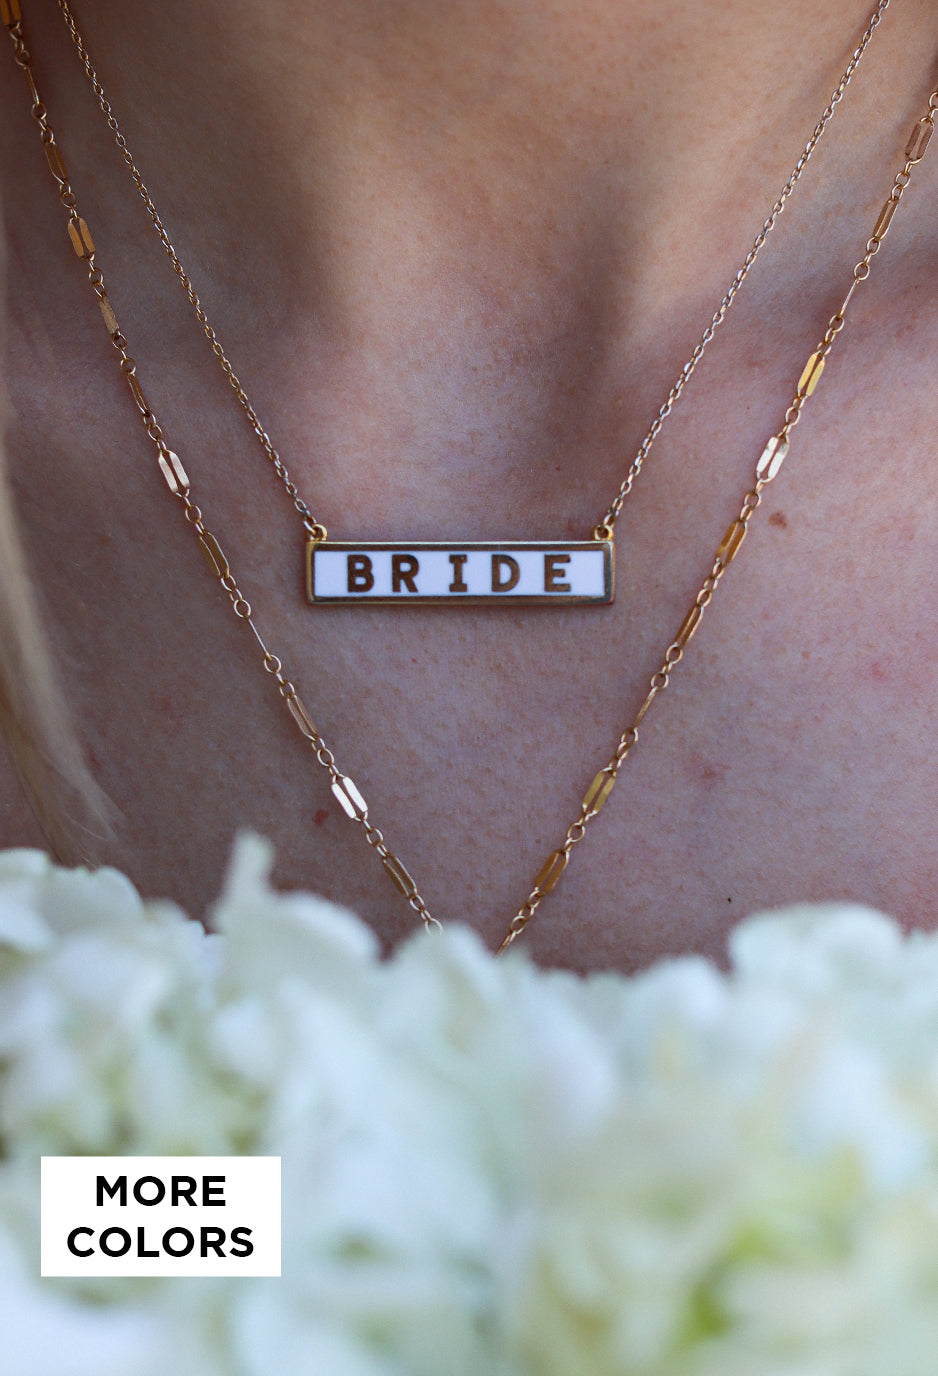 girl wearing black and white turtle neck and black acid washed jeans smiling looking away from camera